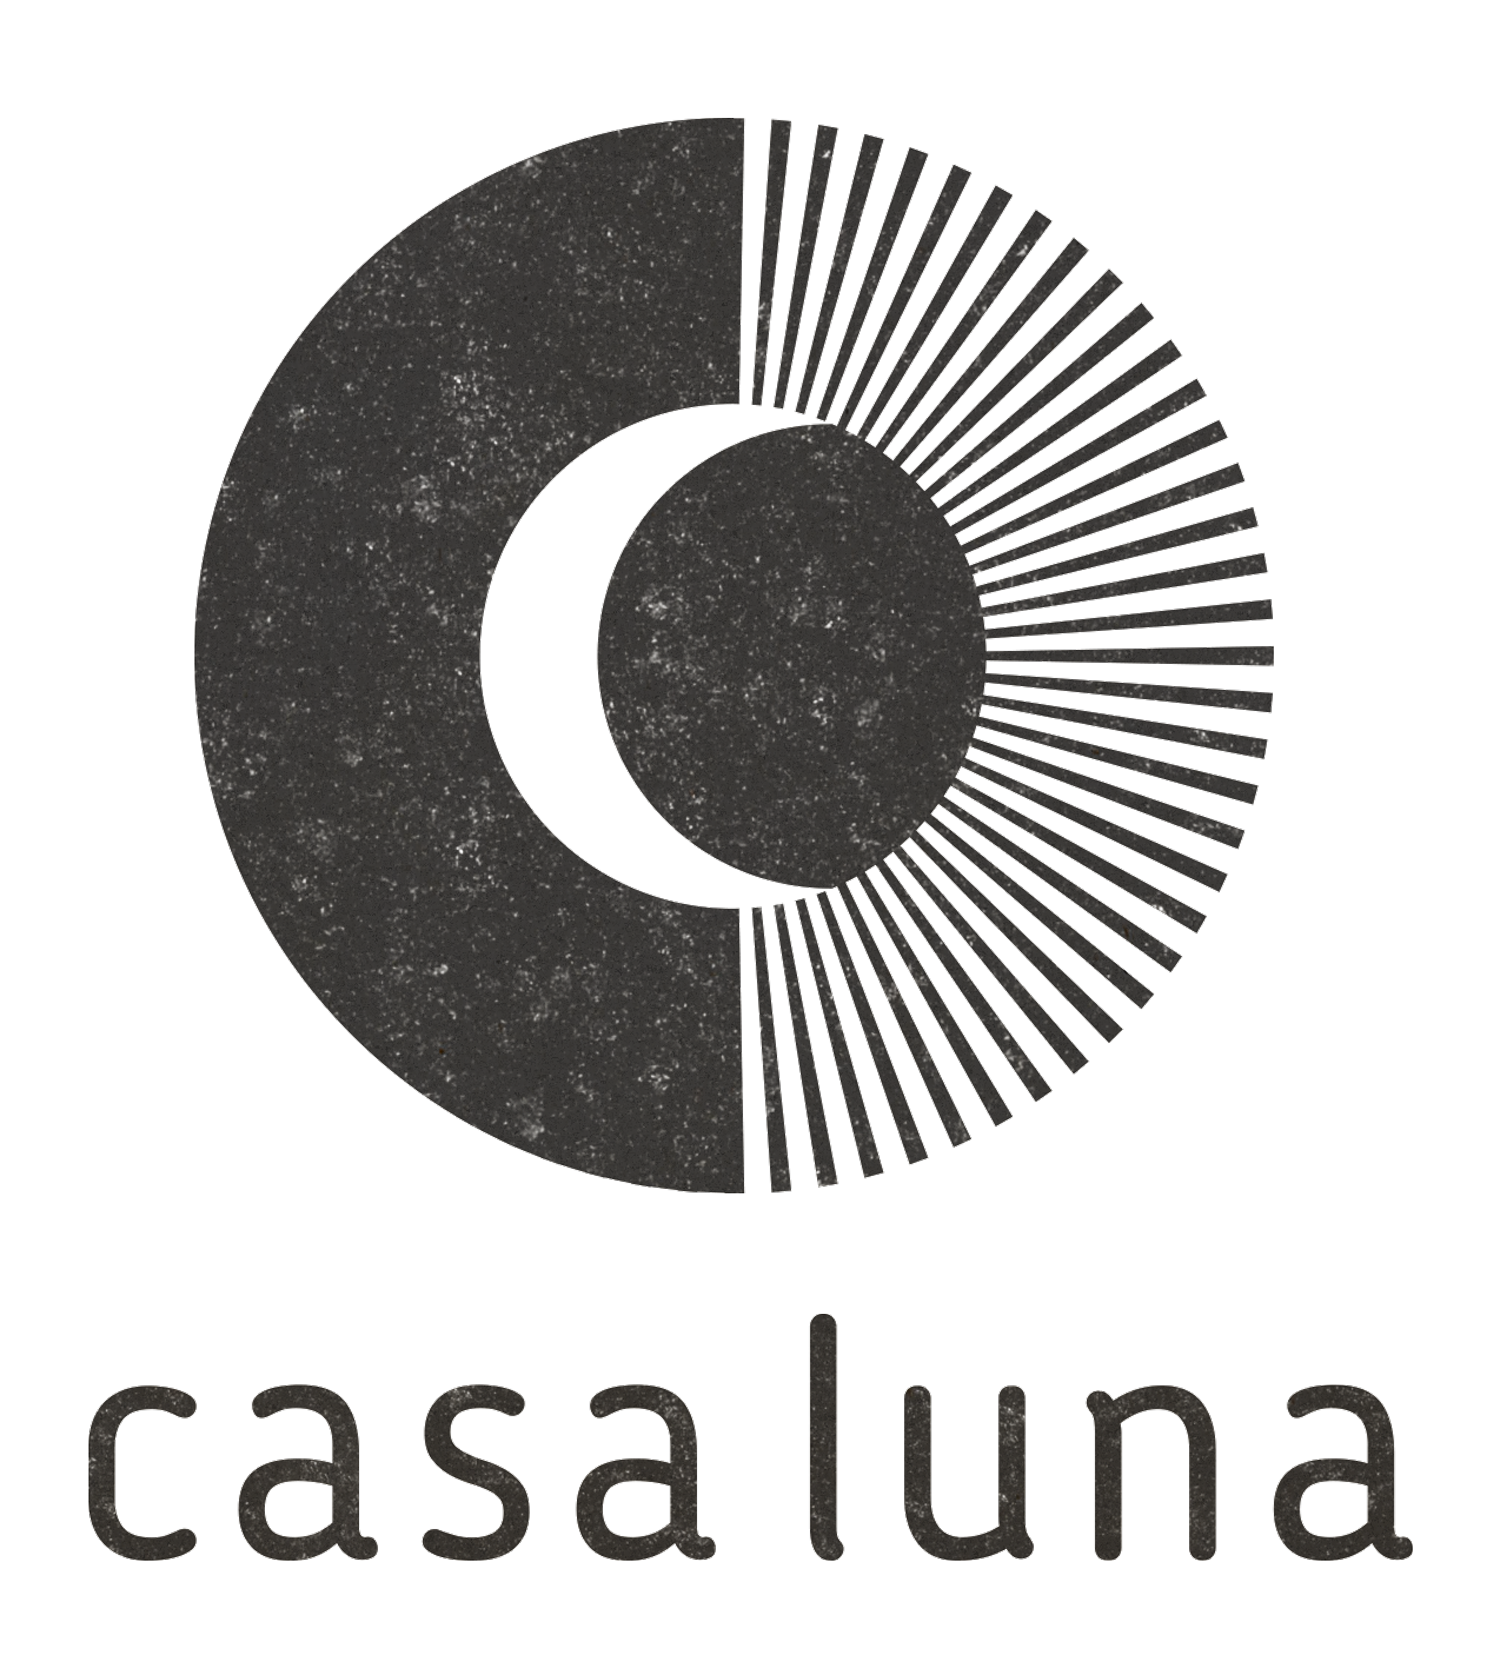 Casa Luna